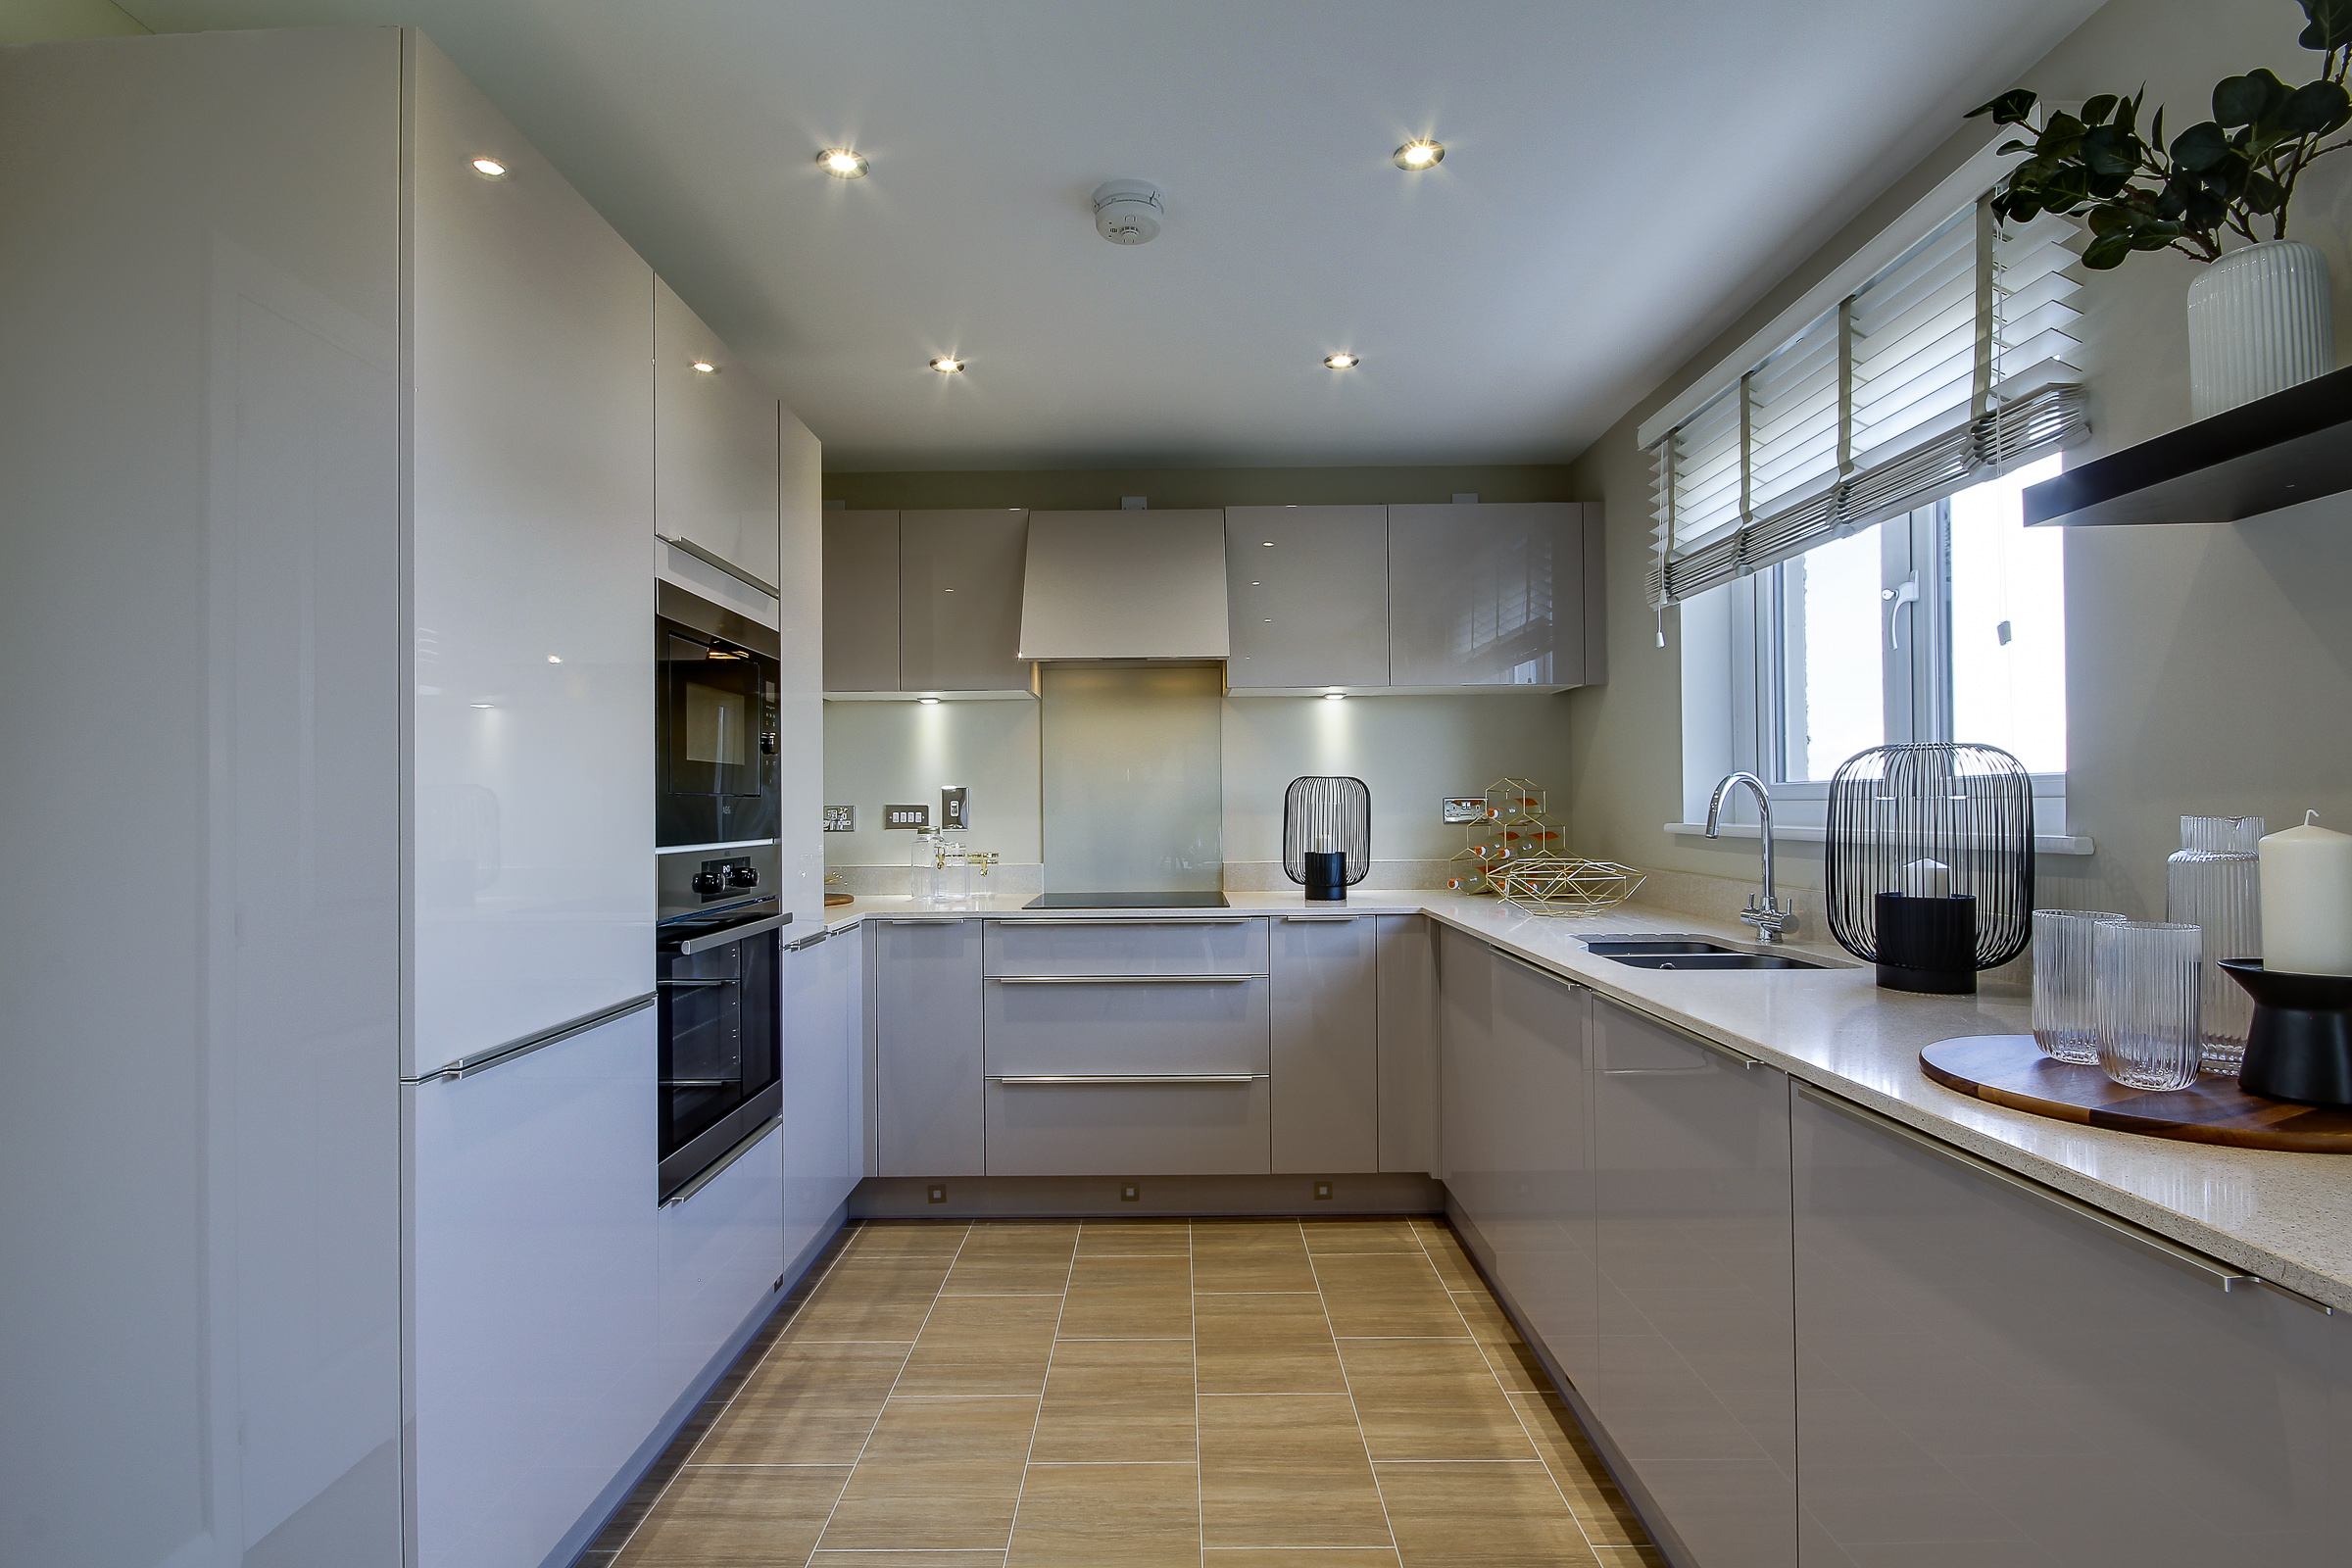 TWES_Calderwood_Geddes 5_Kitchen 1